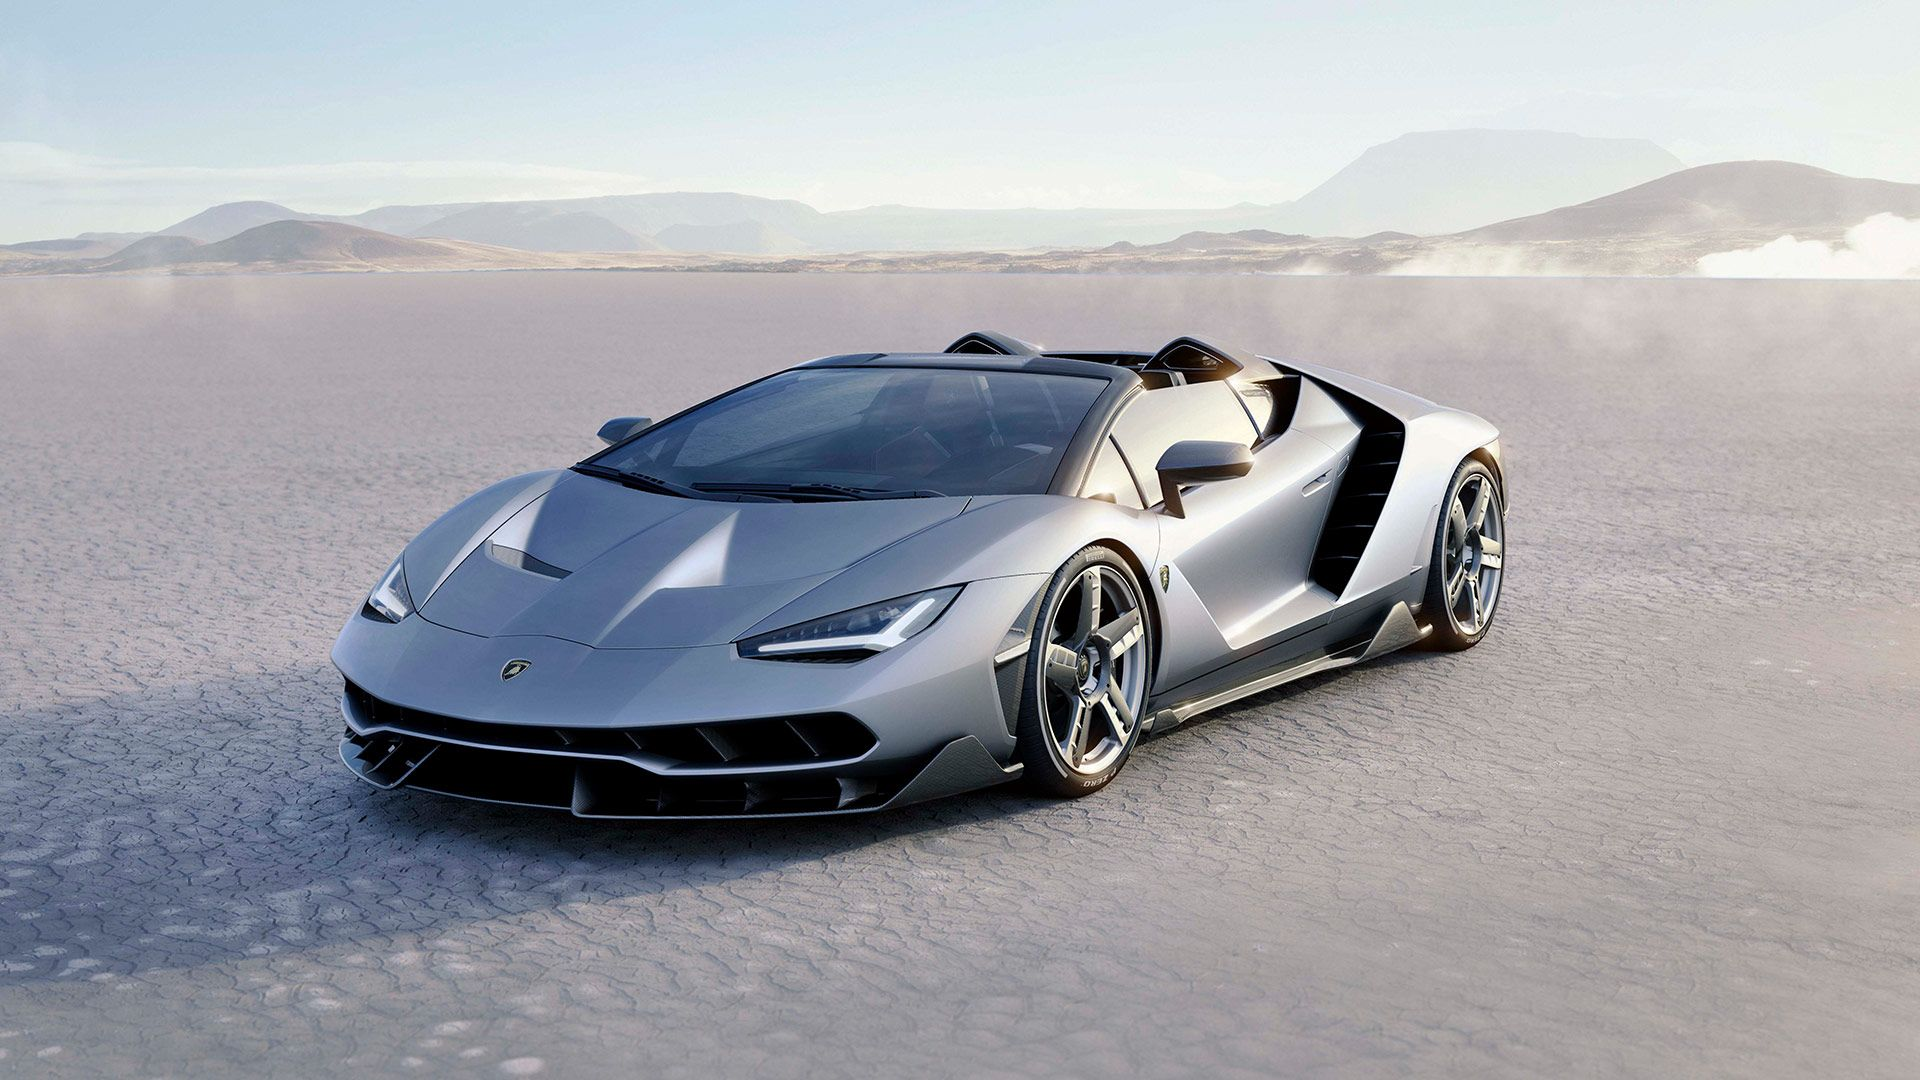 Fai Names Most Beautiful Car Concept City And Supercar Of 2017 Sports Cars Luxury Sports Car Concept Cars